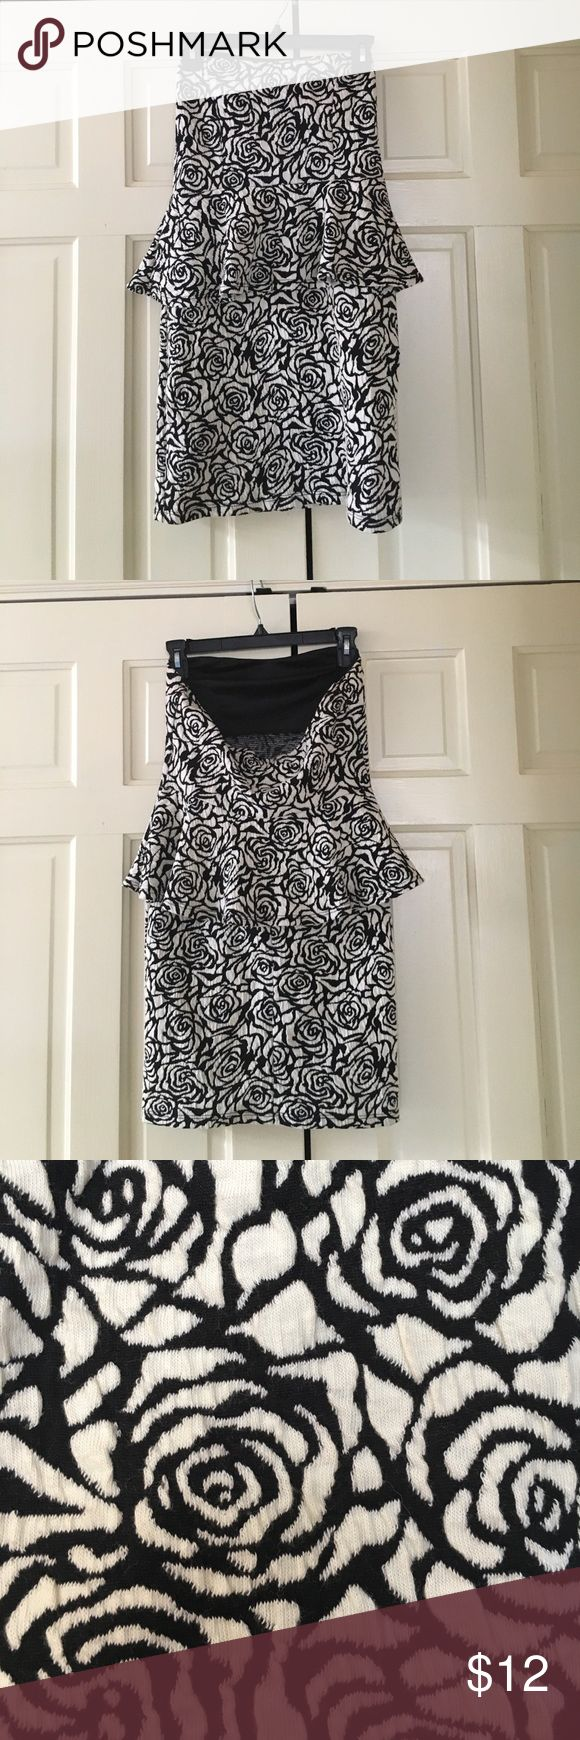 Black and White Rose Peplum Dress Got this fun dress from a boutique. Only worn once. Built in cammy bra. Looks great for any occasion! Dresses Mini